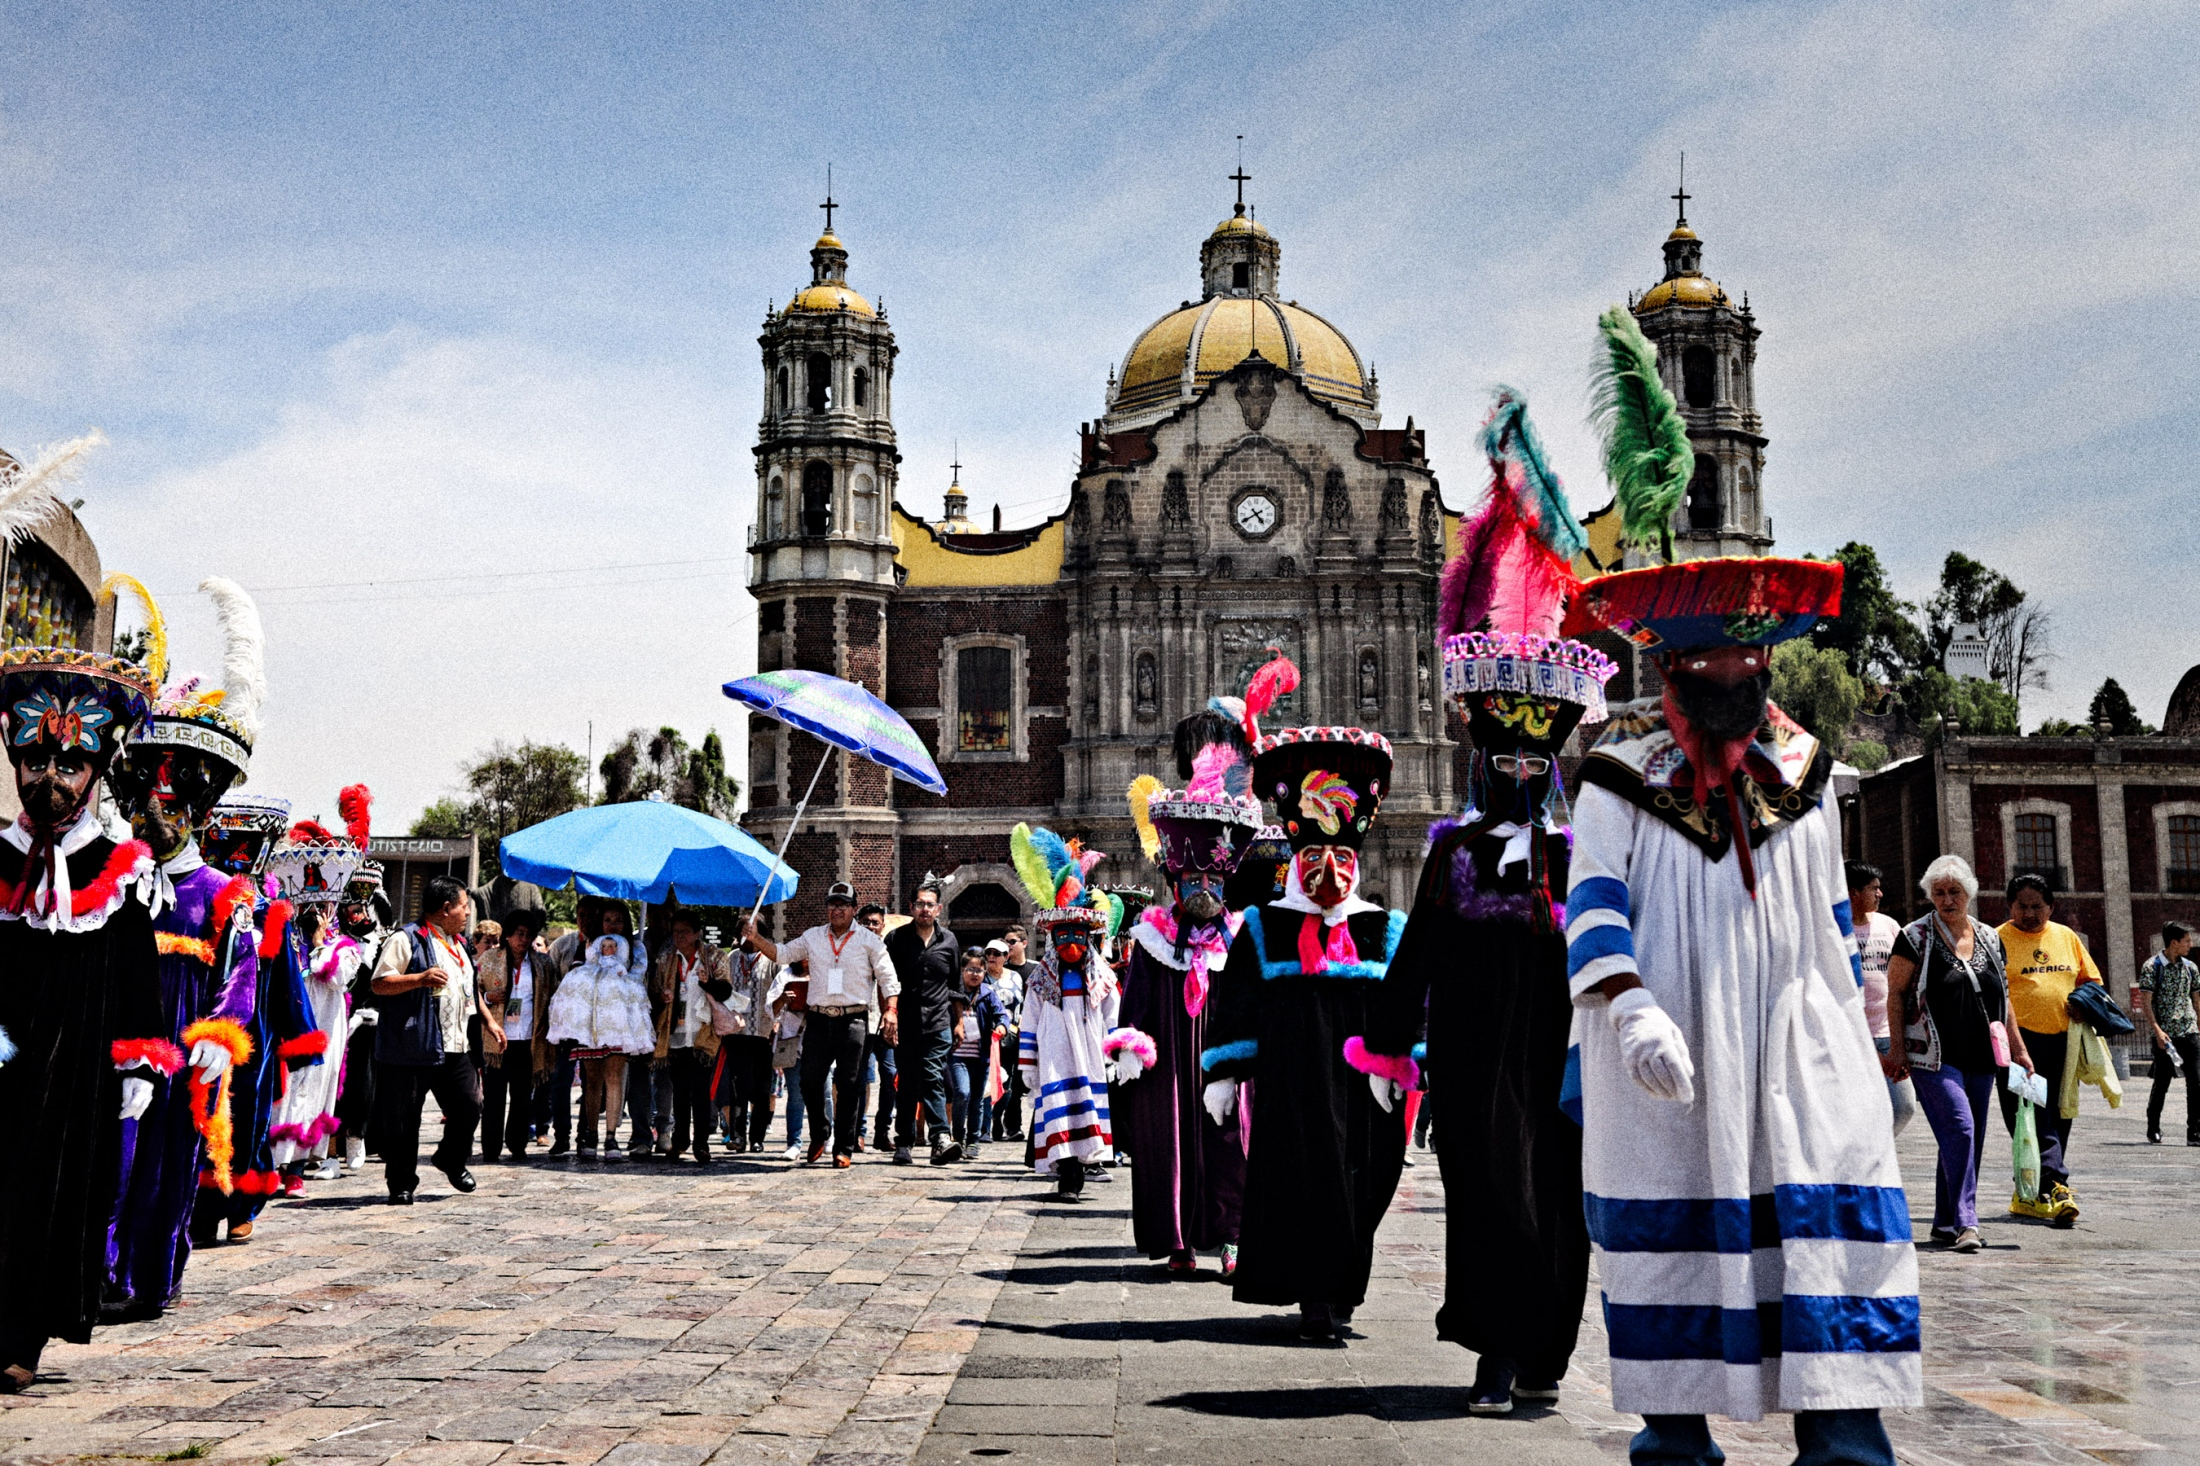 After attending mass at the Basilica of Our Lady of Guadalupe, Niñopa leaves the ground preceded by dancers and musicians.